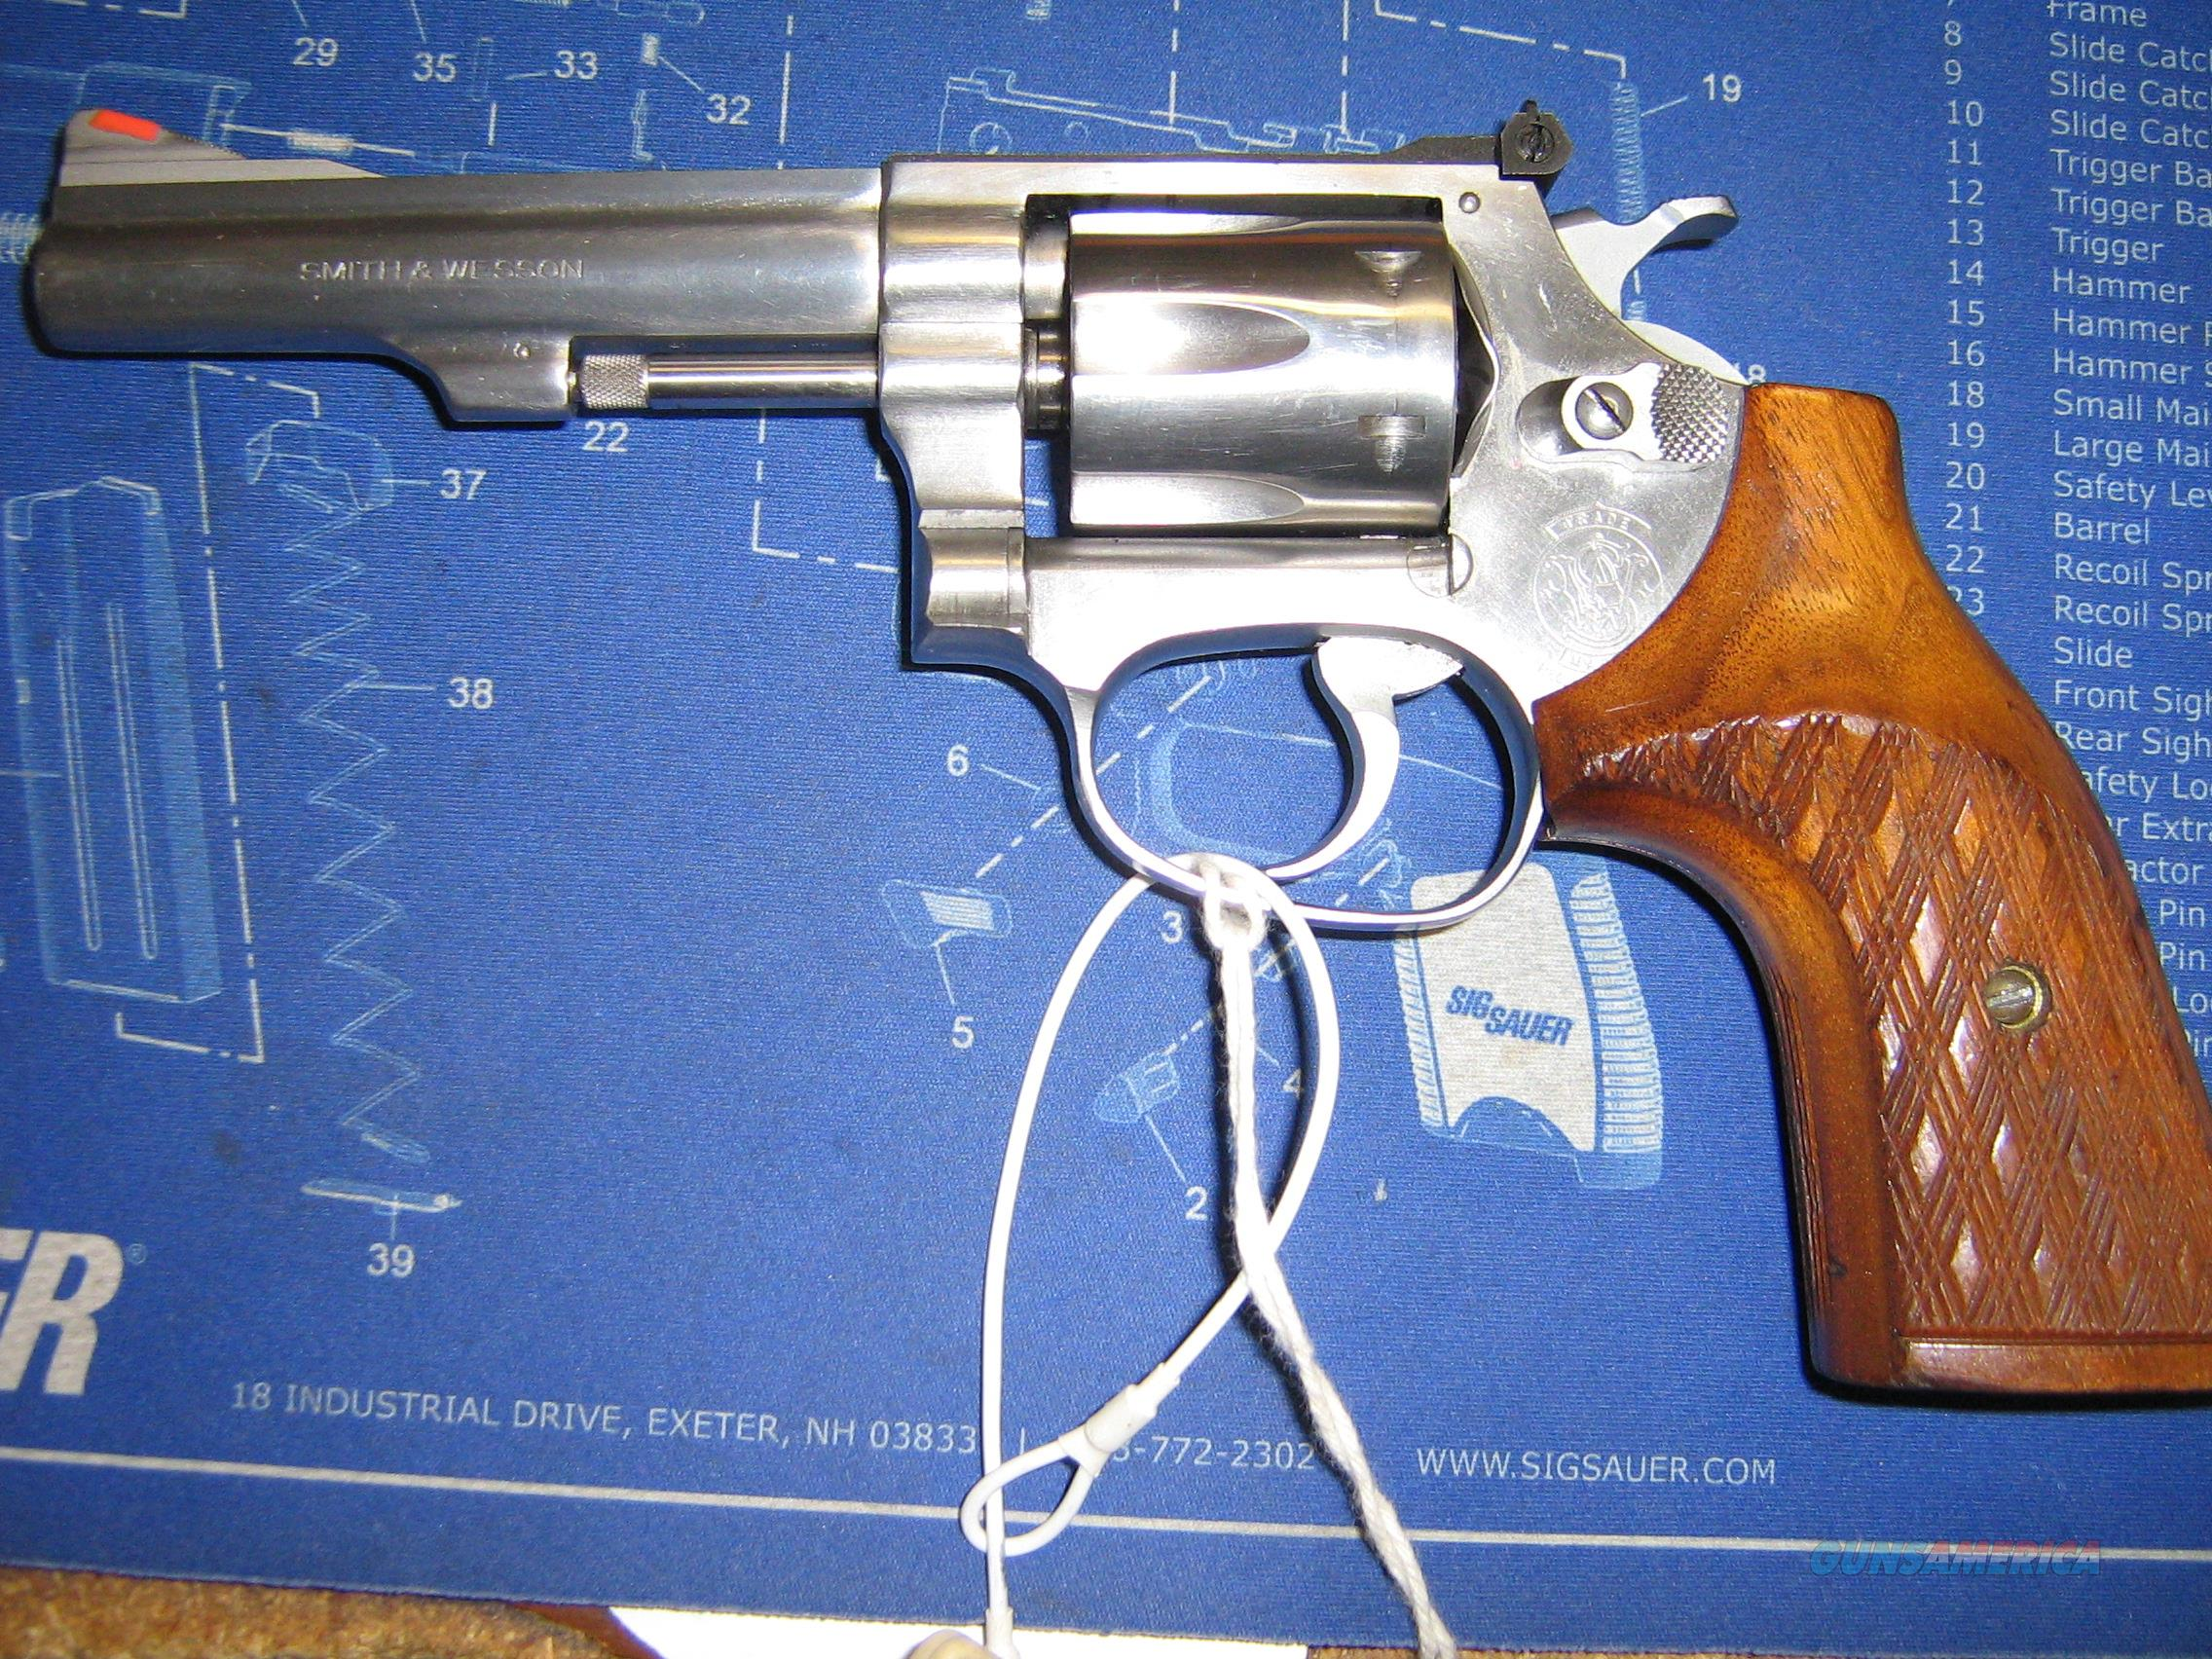 SMITH & WESSON 651  Guns > Pistols > Smith & Wesson Revolvers > Pocket Pistols